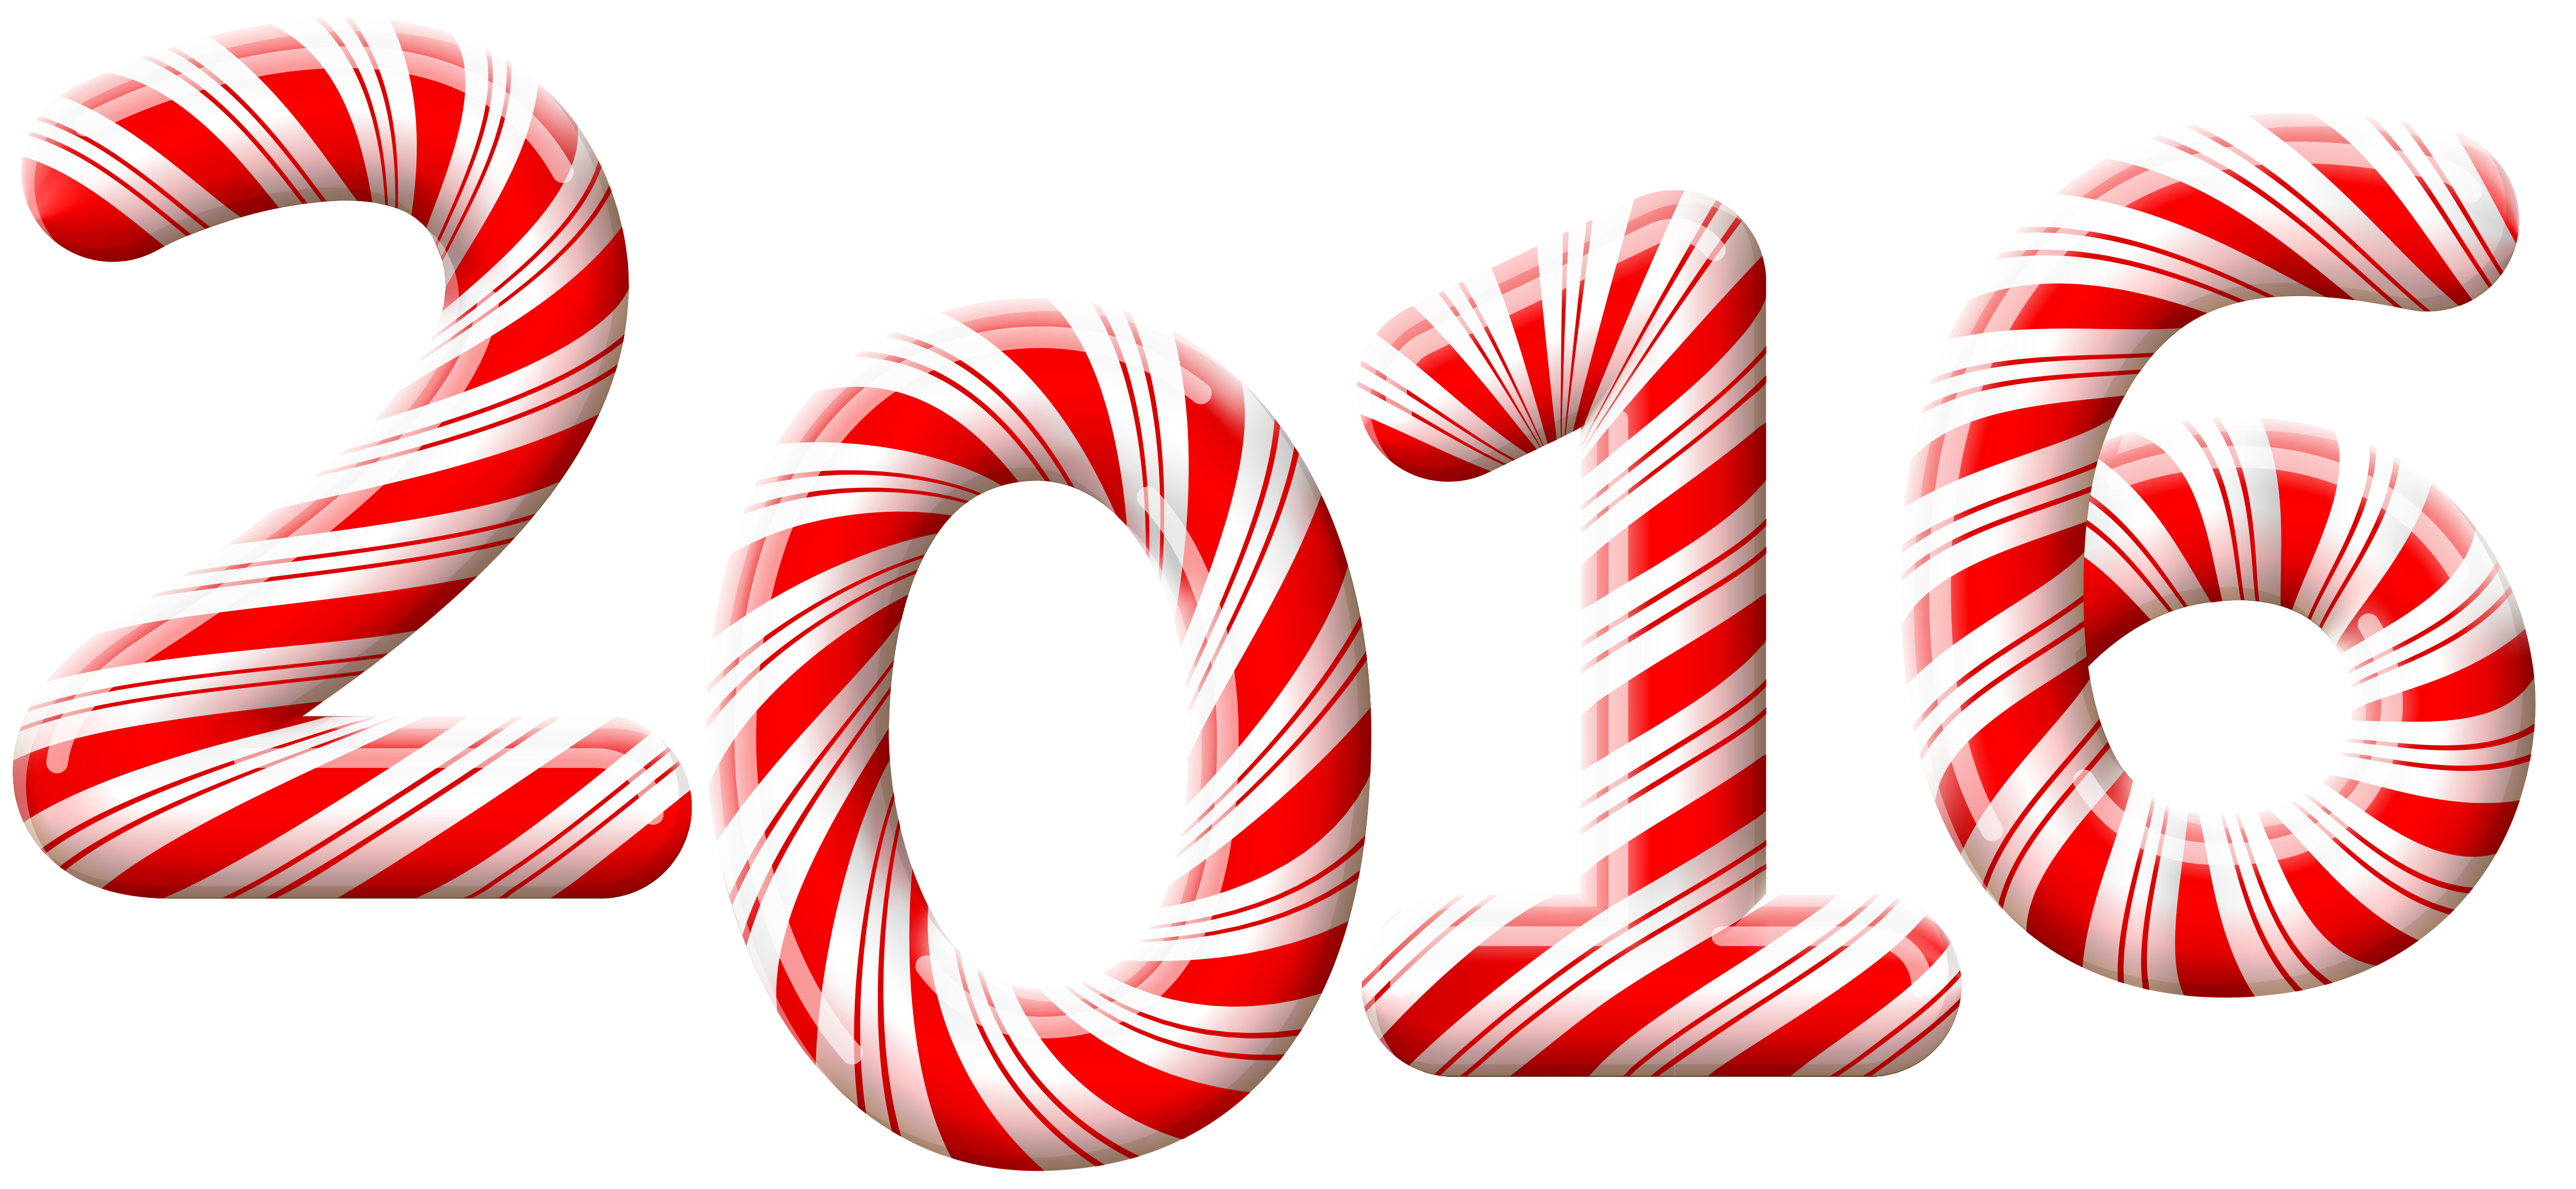 Christmas 2016 clipart banner freeuse 2016 Candy Cane PNG Clip-Art Image | Gallery Yopriceville - High ... banner freeuse